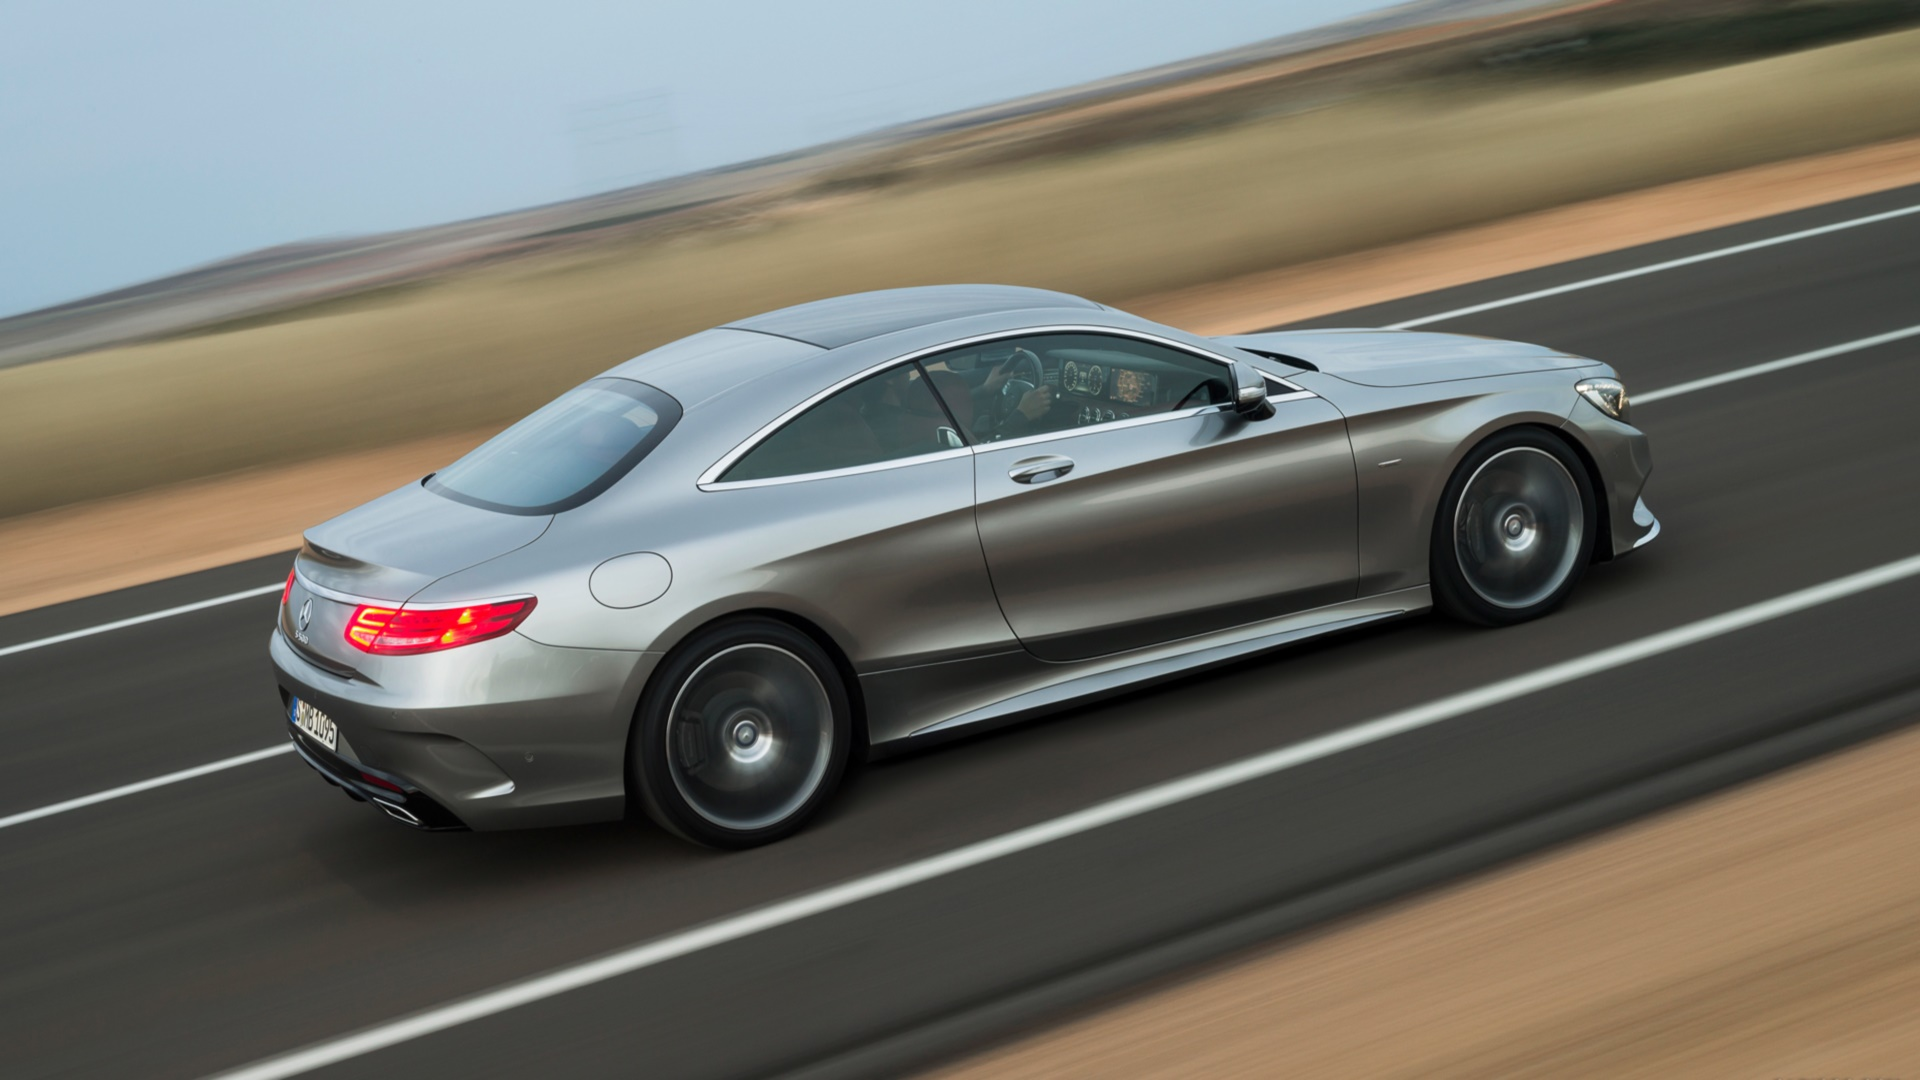 Mercedes-Benz S-Class Coupe Wallpapers, Pictures, Images